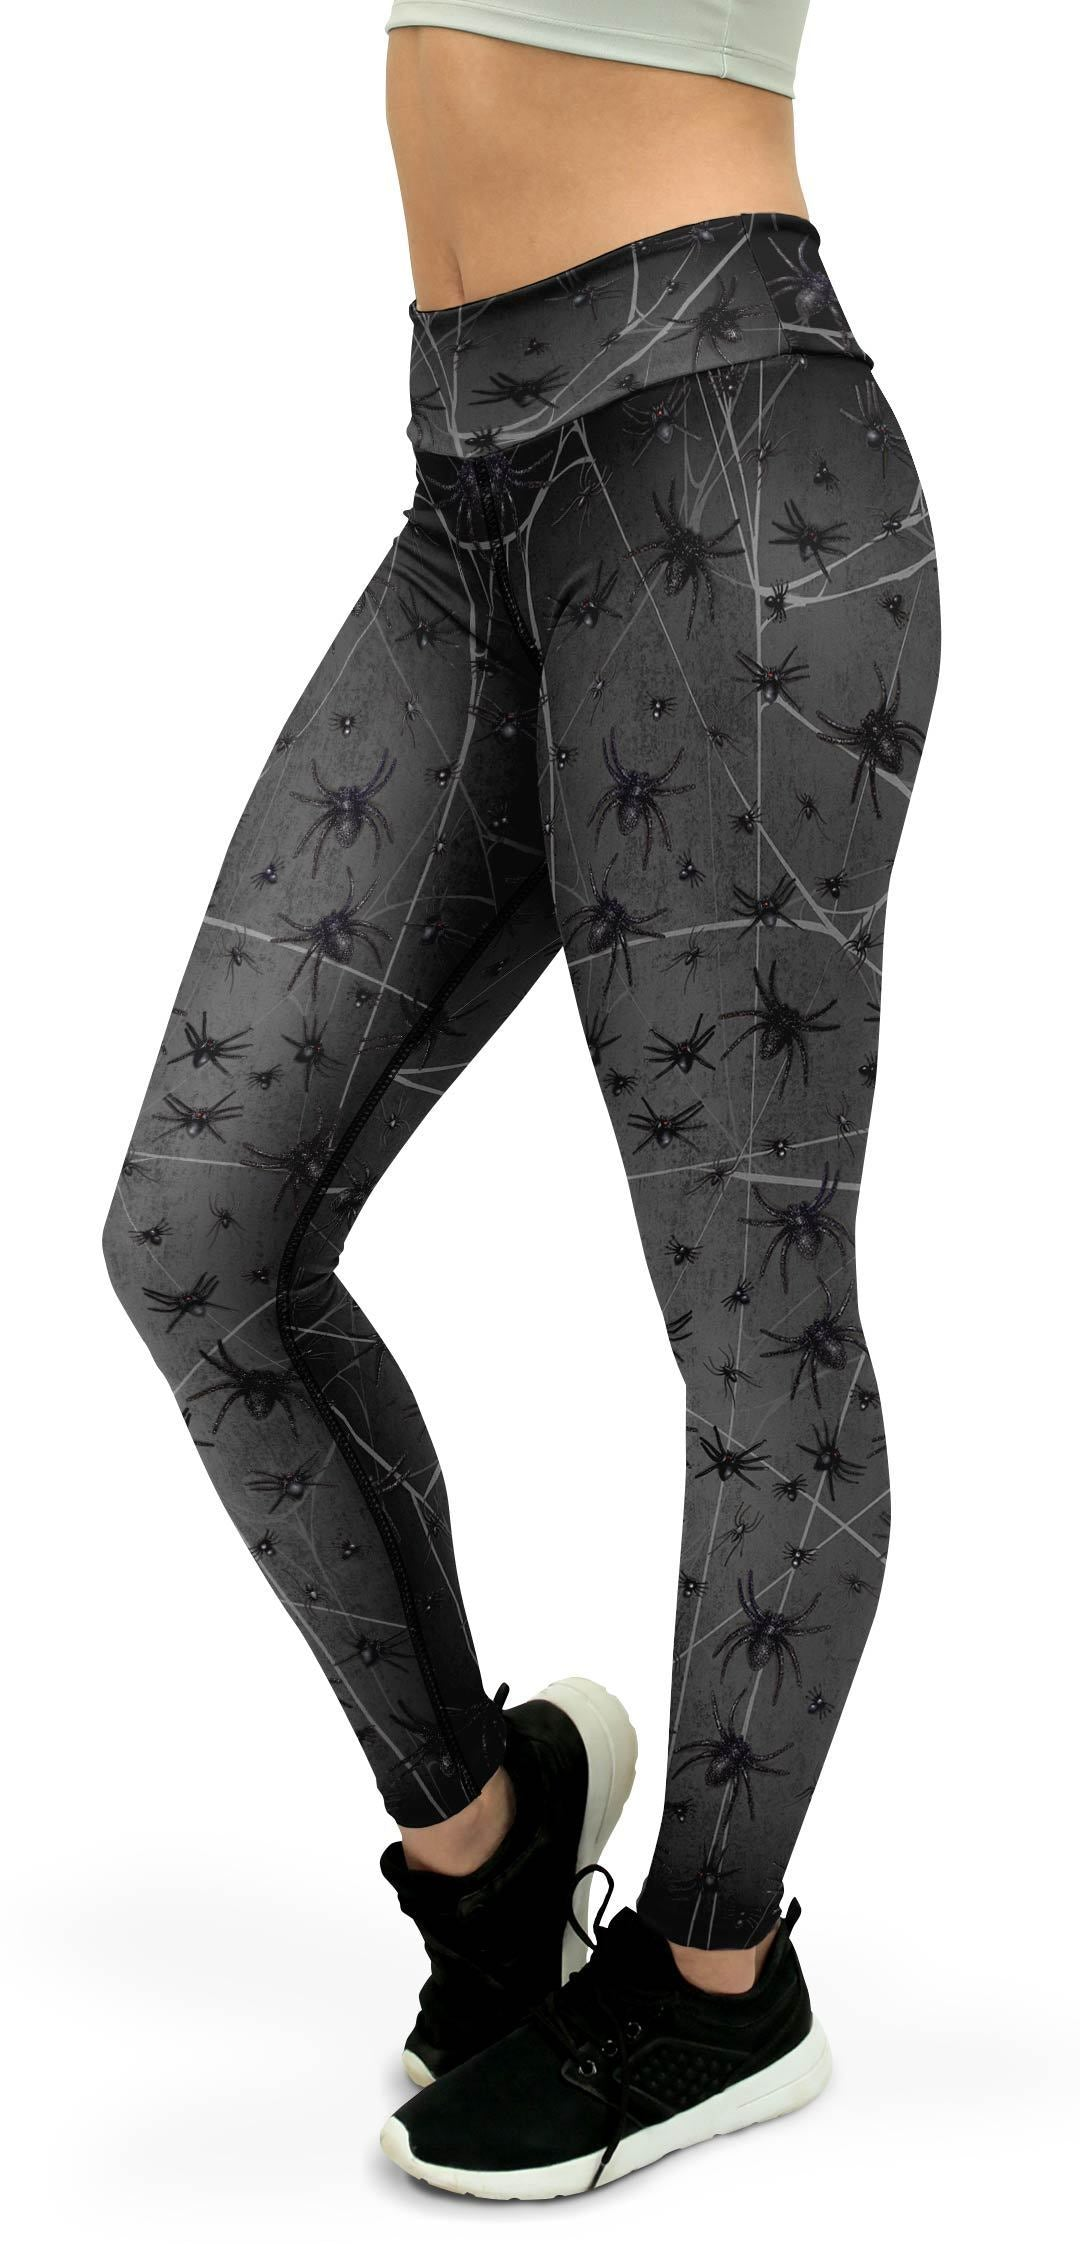 Crawling Spiders Yoga Pants